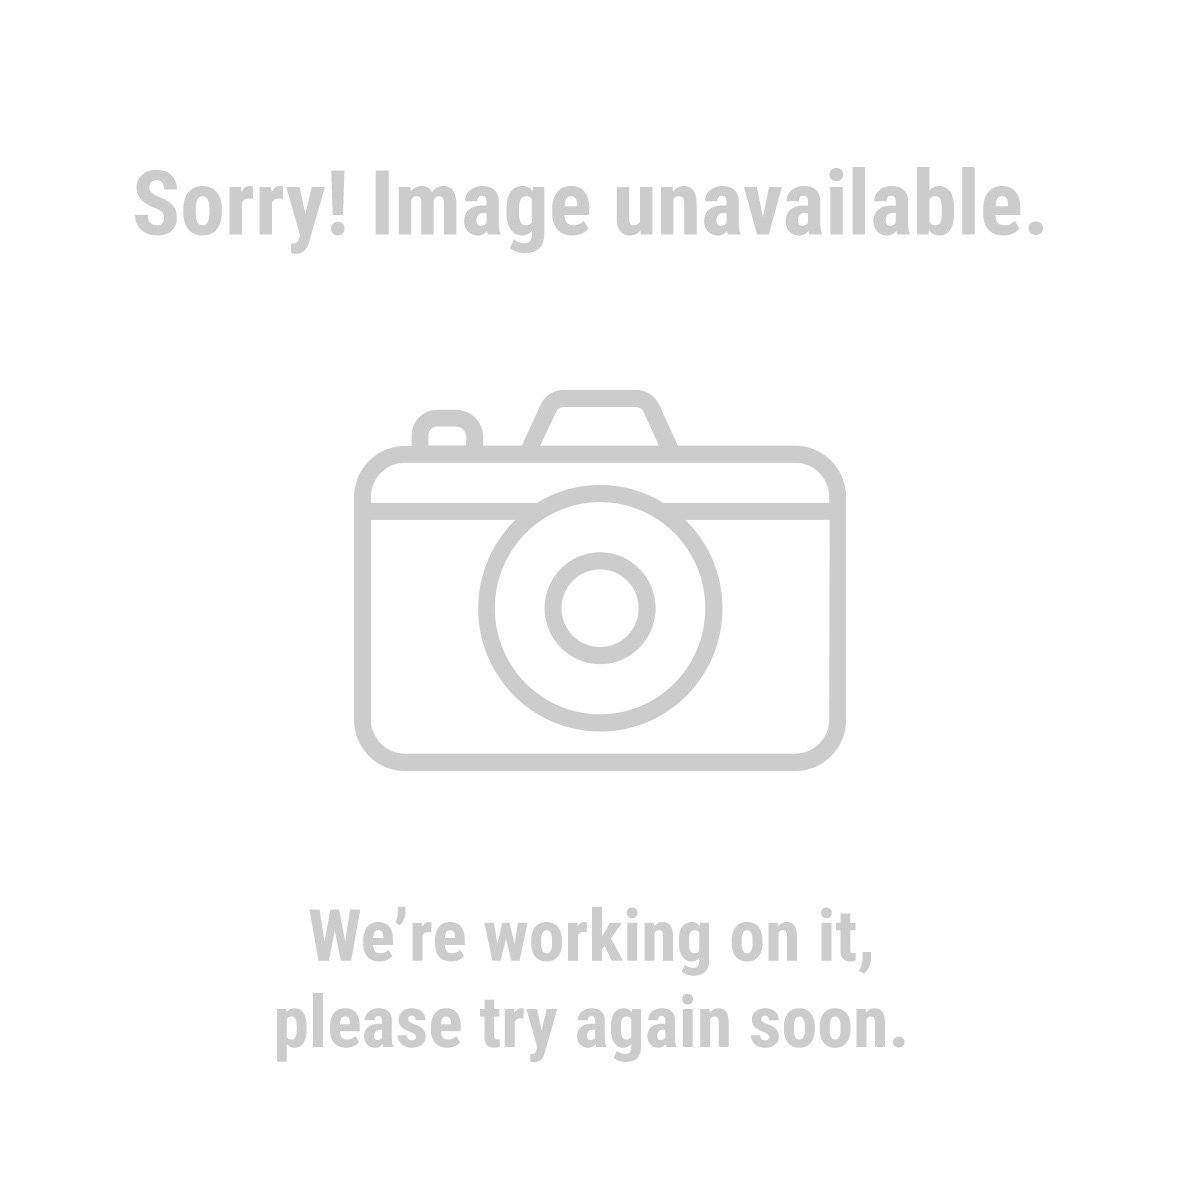 Central Machinery 60344 1300 Lb. Electric Hoist with Remote Control